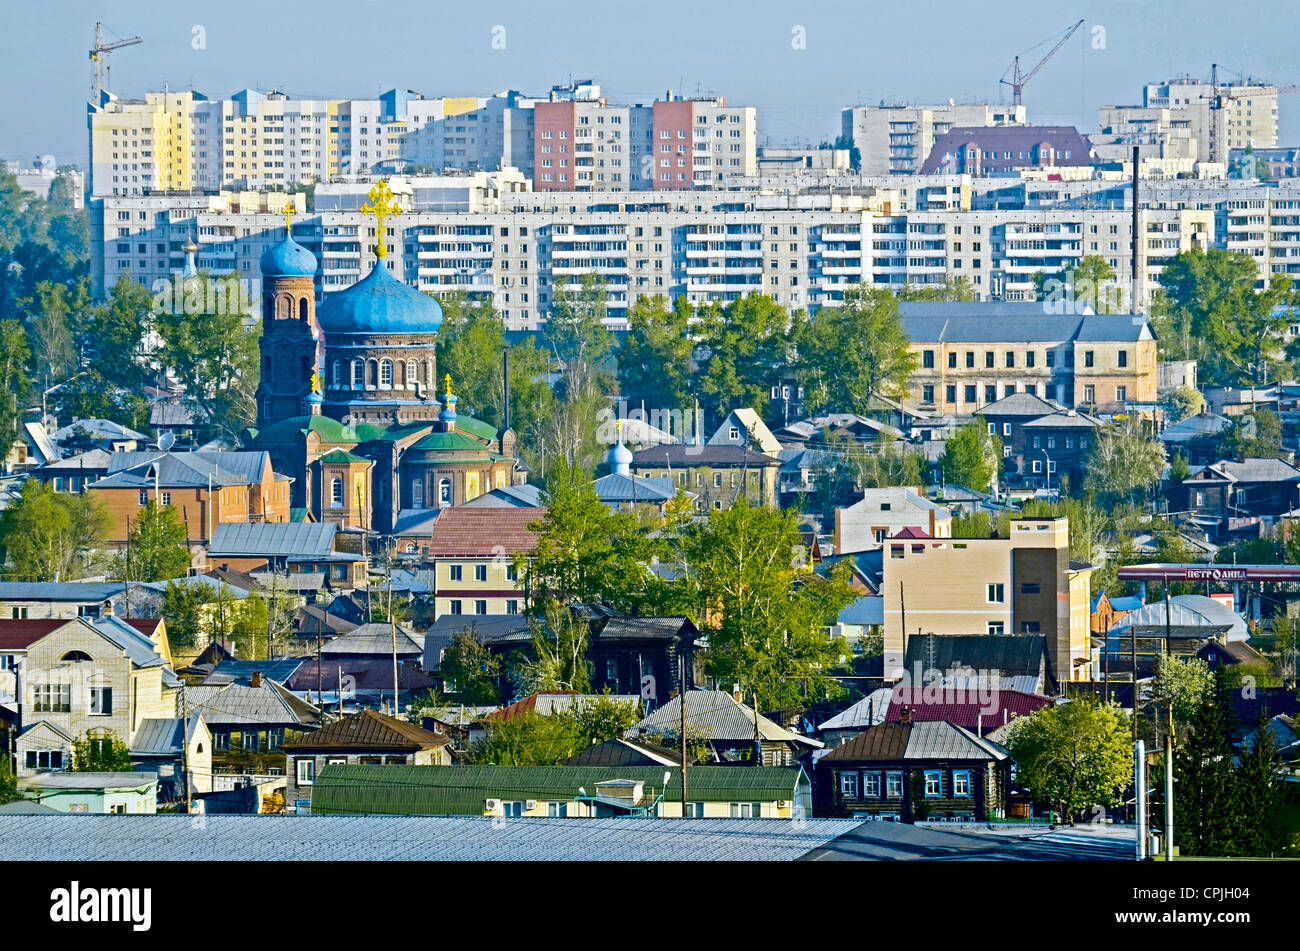 Where is Barnaul, in what area 99